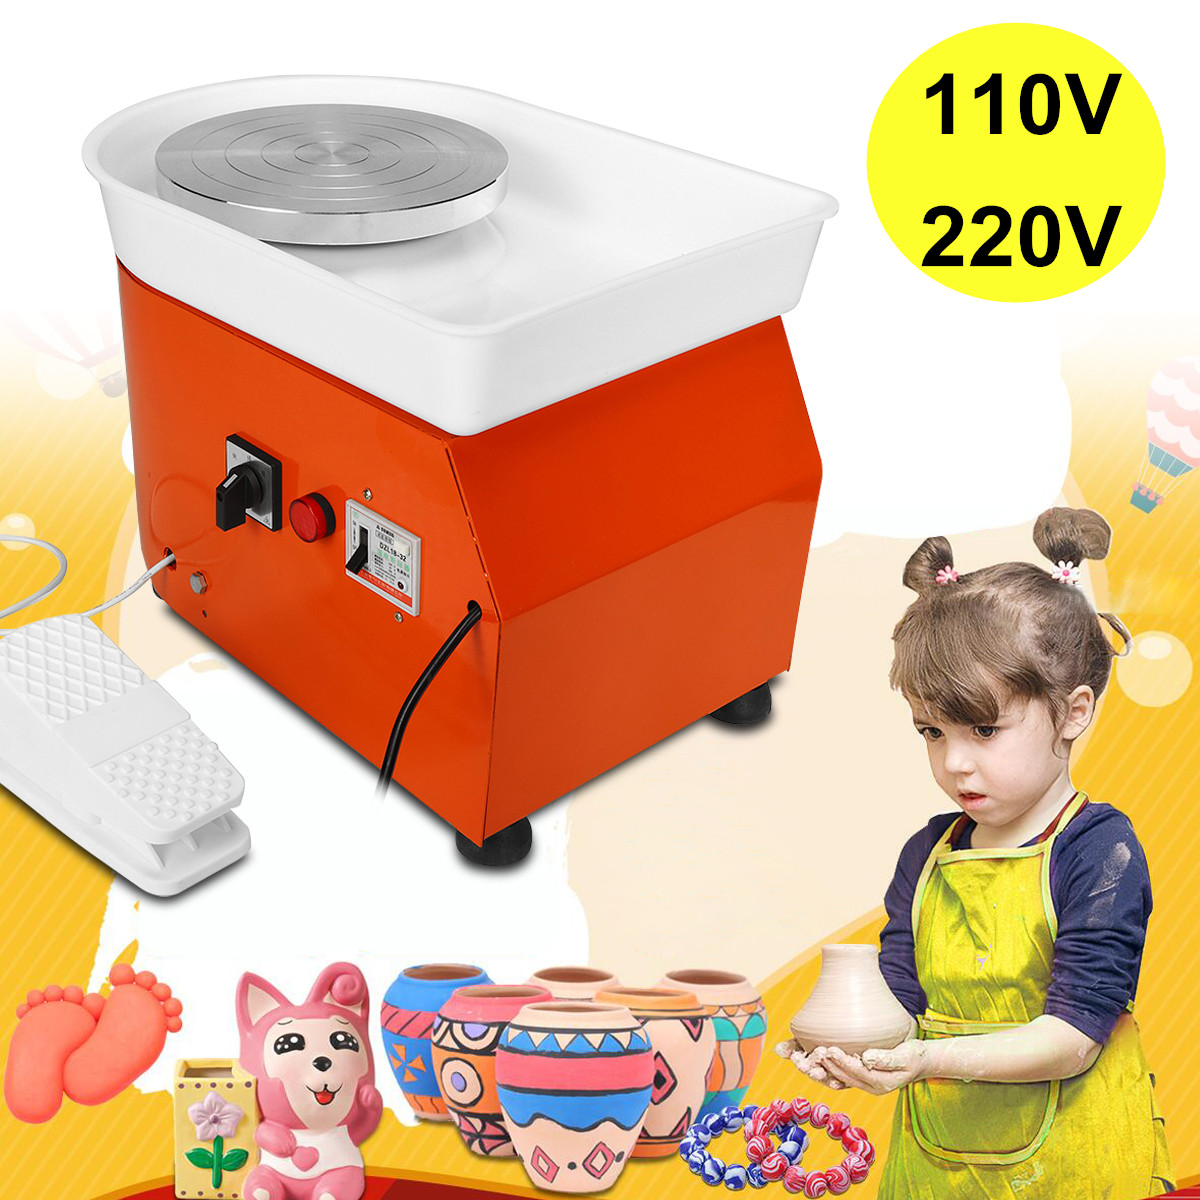 EU/AU AC220V 250 350W Pottery Wheel Machine 25cm Ceramic Work Ceramics Clay Art With Mobile Flexible Foot Pedal Smooth Low Noise